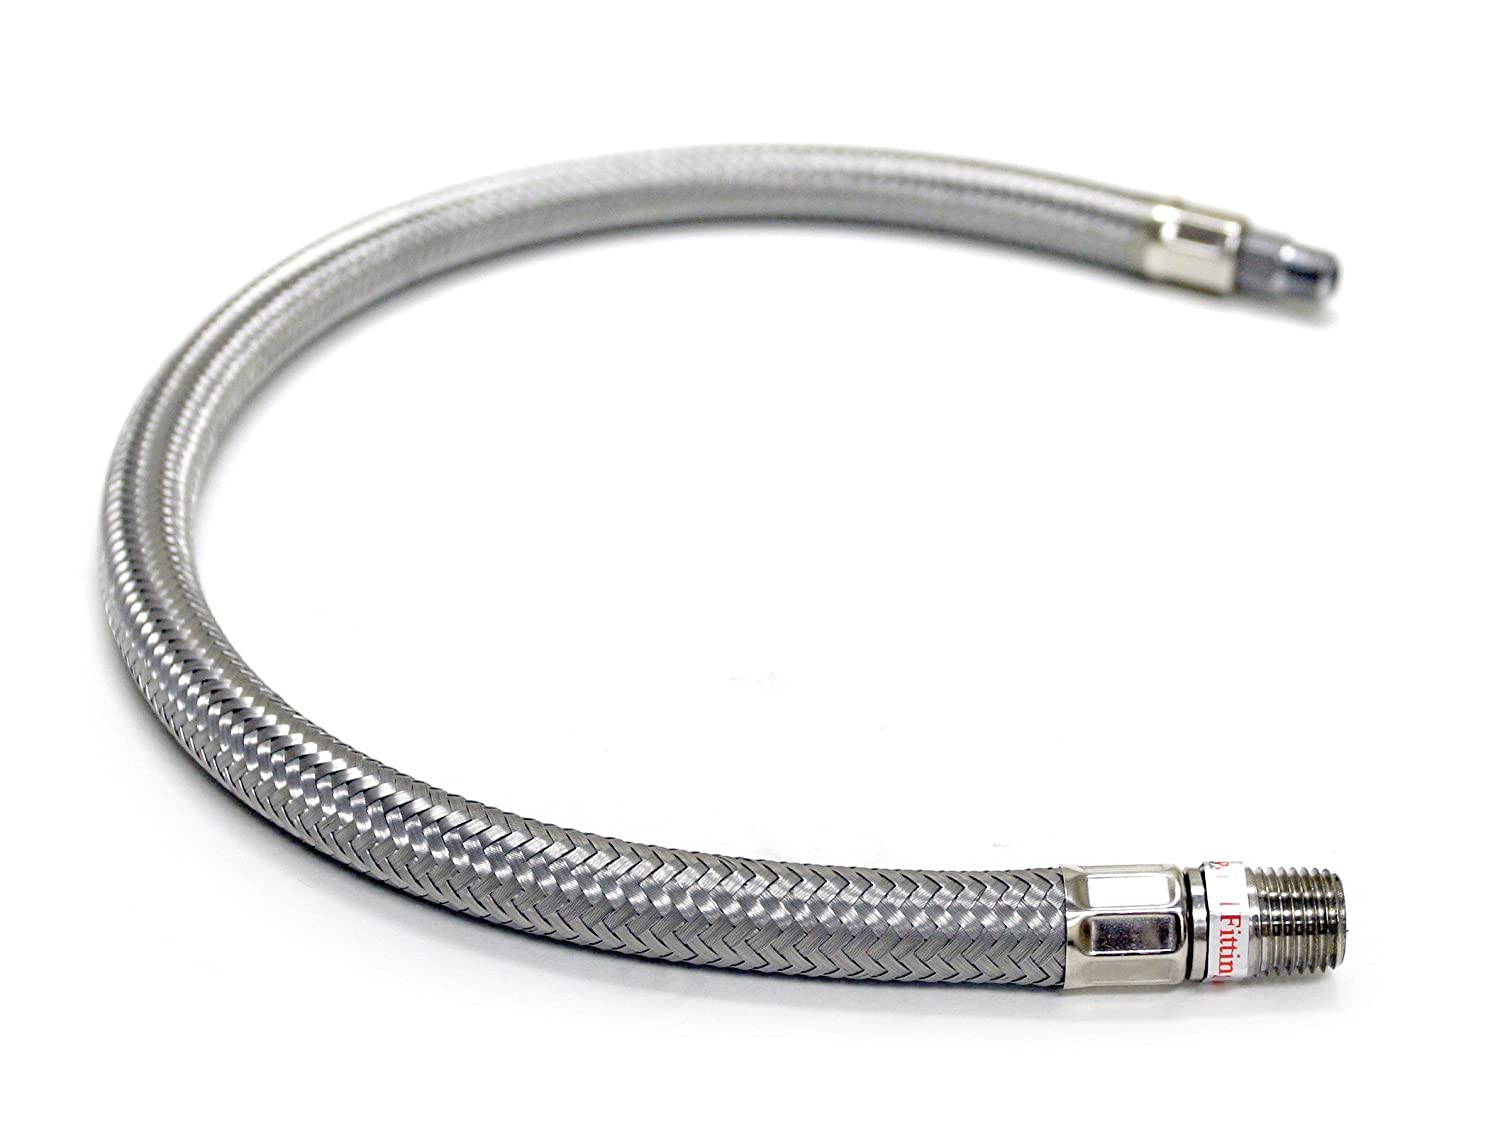 Viair 92804 18' Stainless Steel Braided Leader Hose without Check Valve